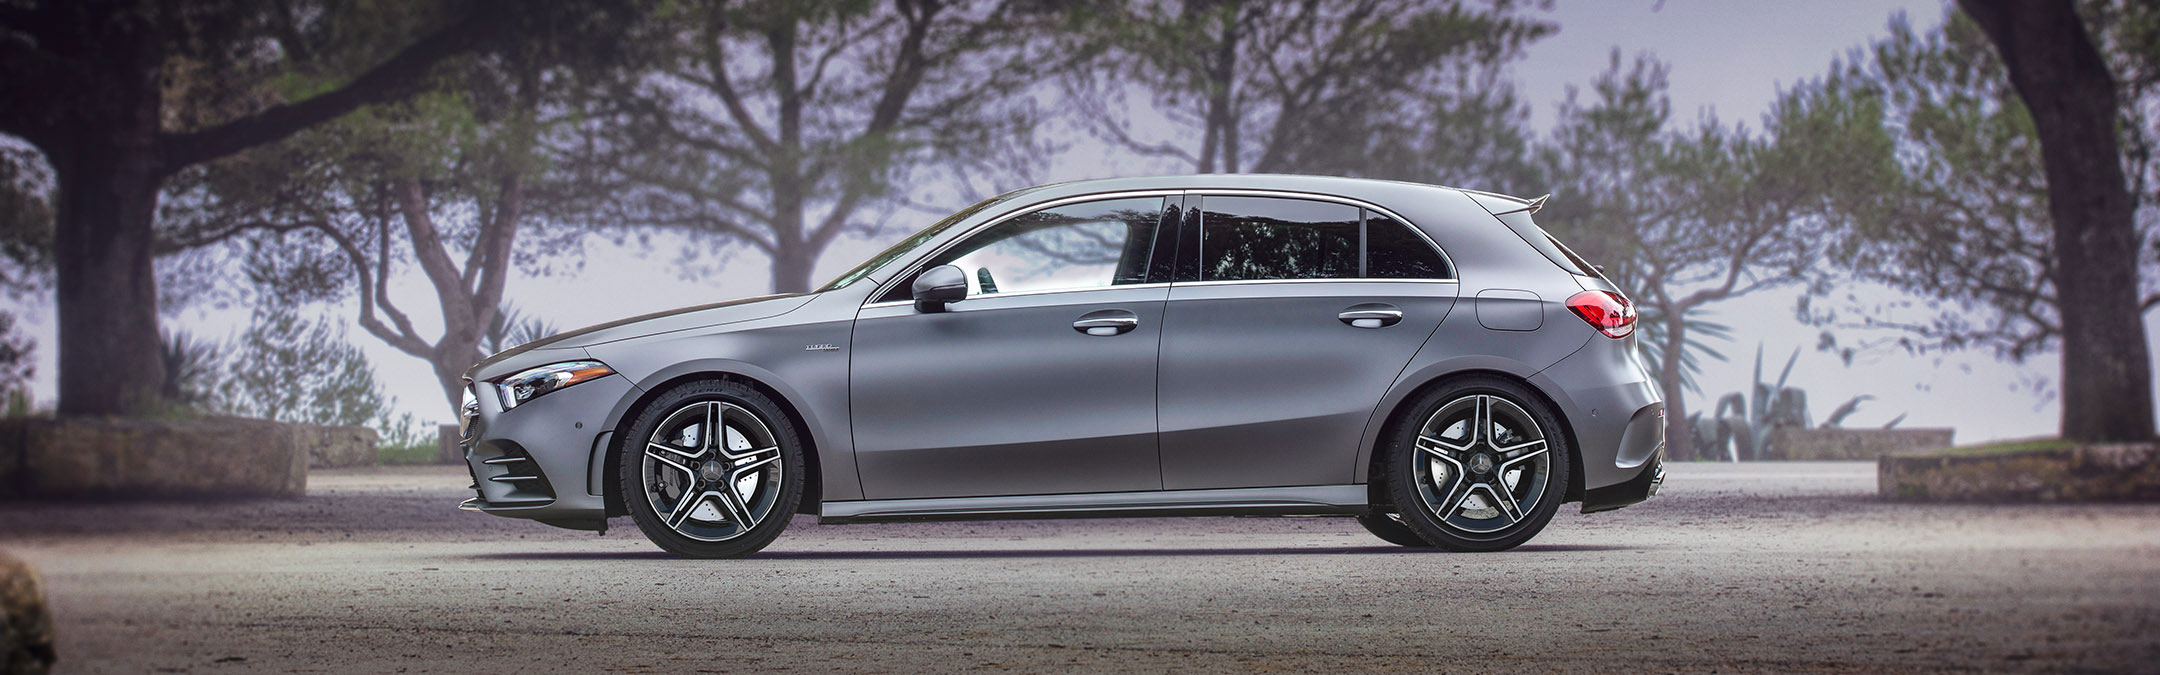 2020 amg a 35 4matic hatch